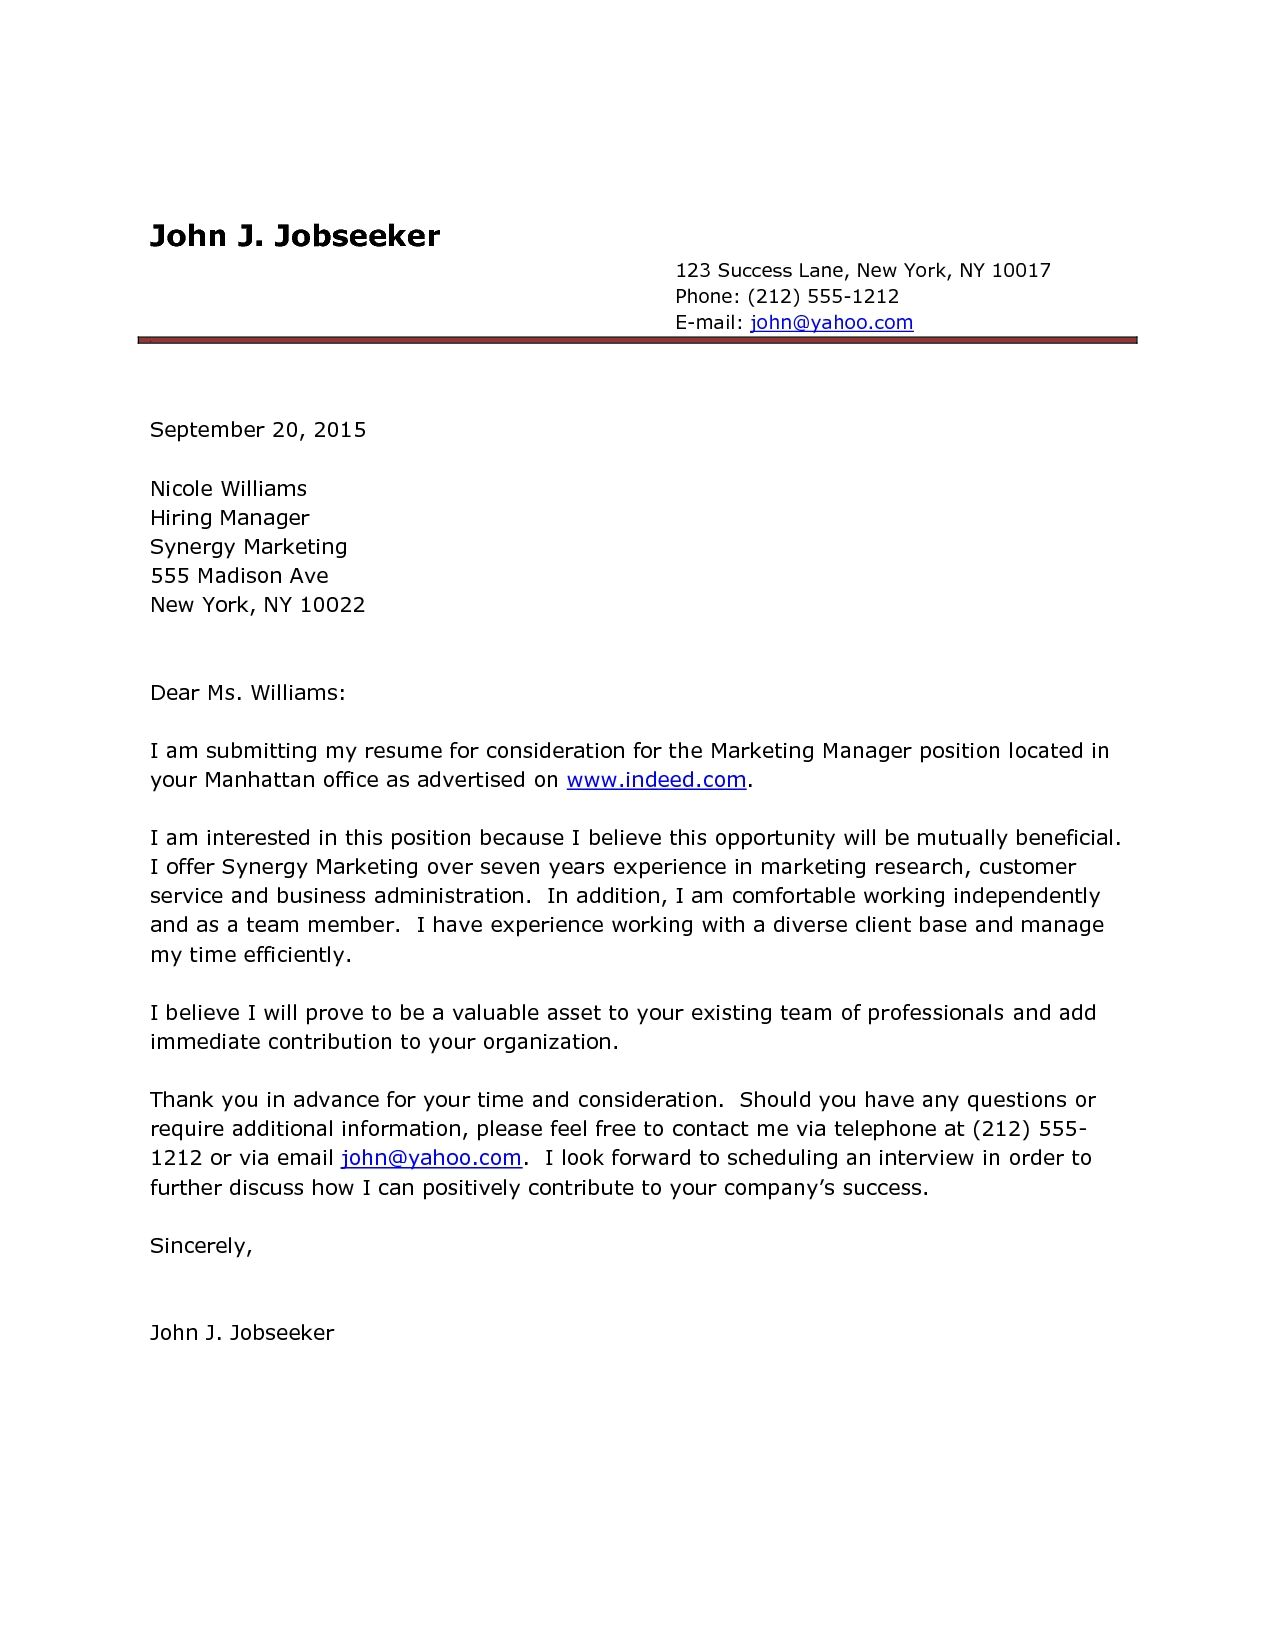 Sample Cover Letter For Job Application Doc In 2020 Letter Template Word Cover Letter Cute766